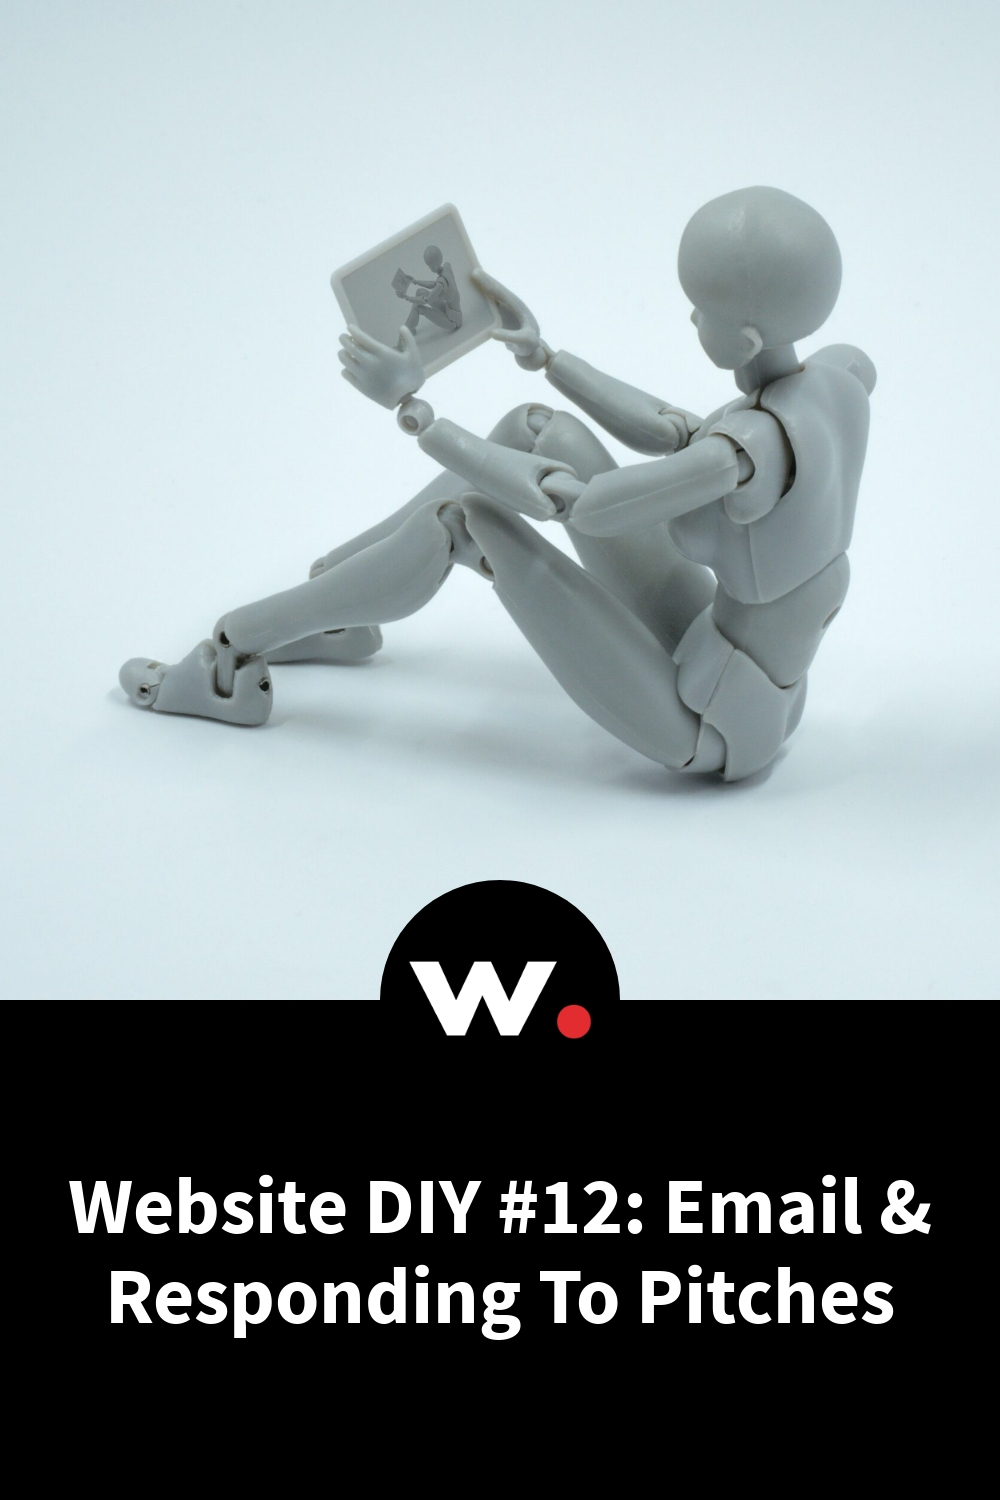 Website DIY #12: Email & Responding To Pitches